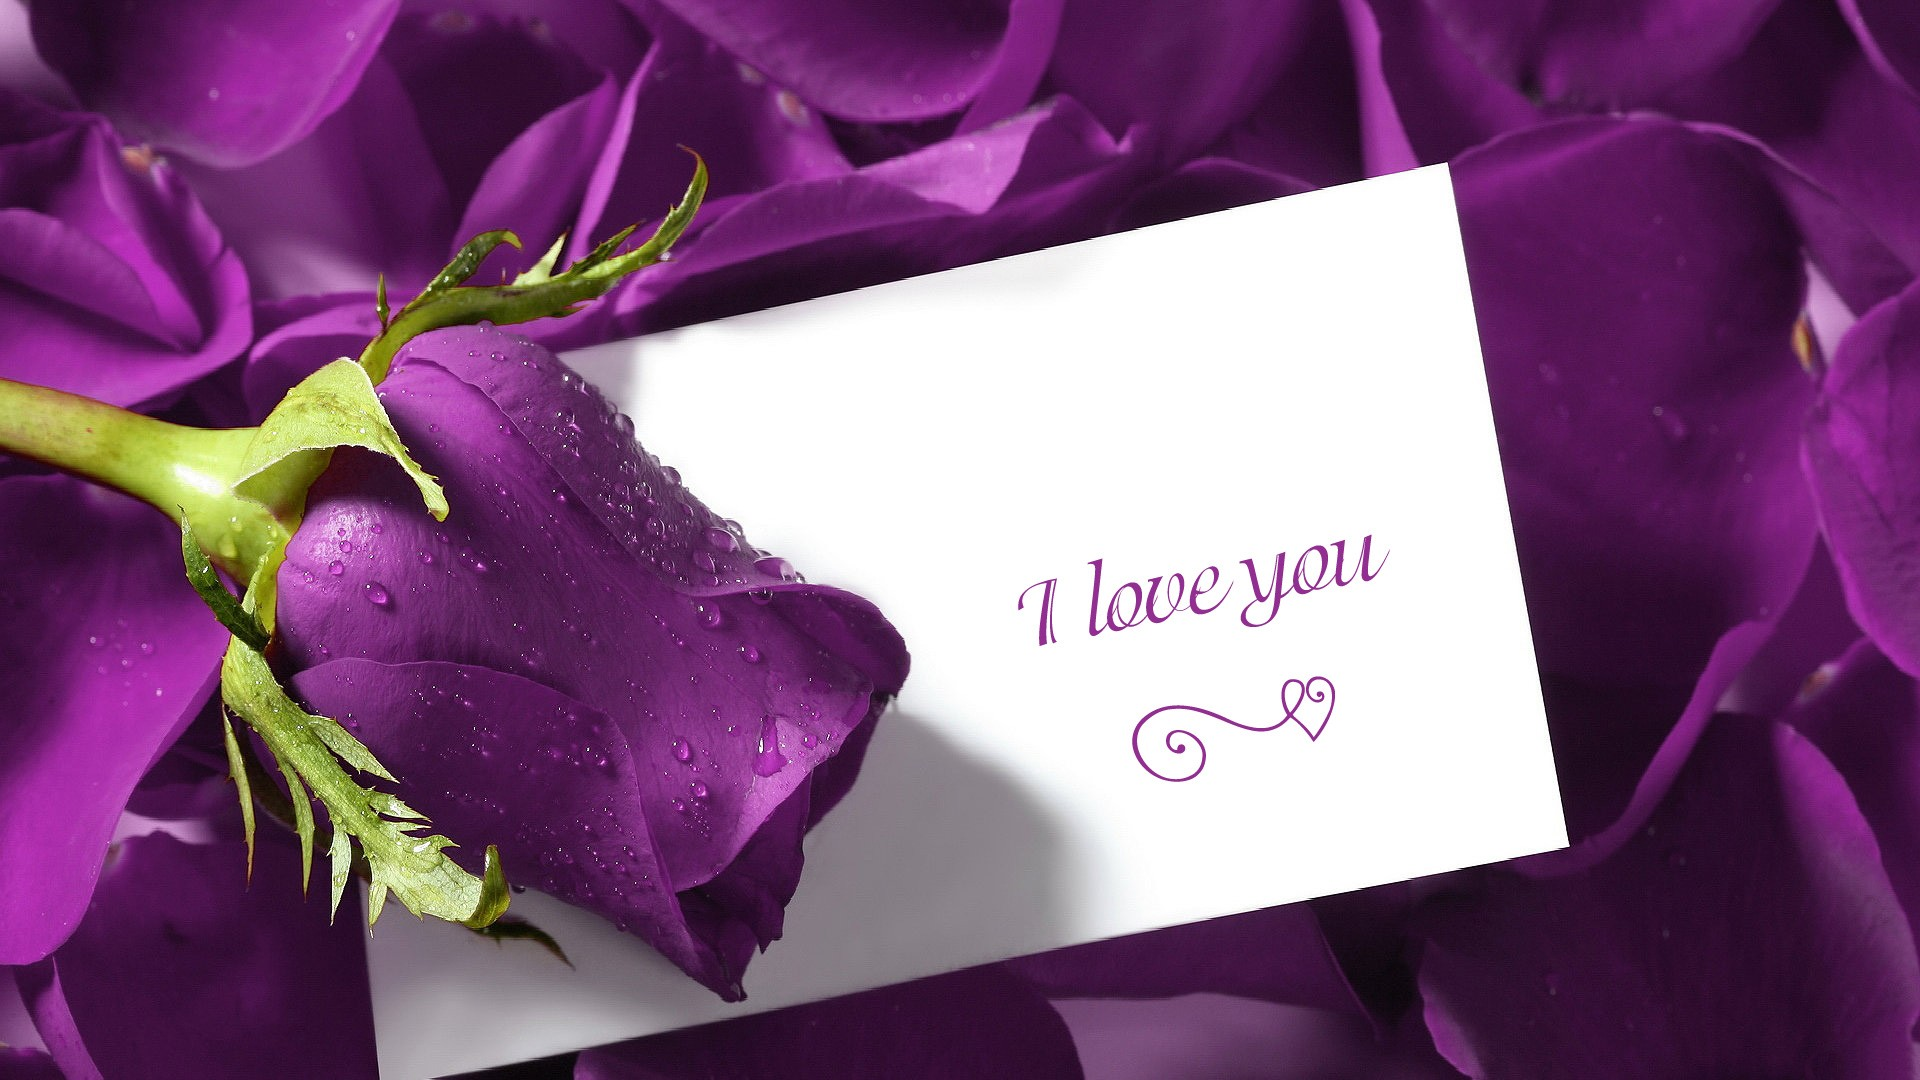 i love you wallpapers hd a25 hd desktop wallpapers